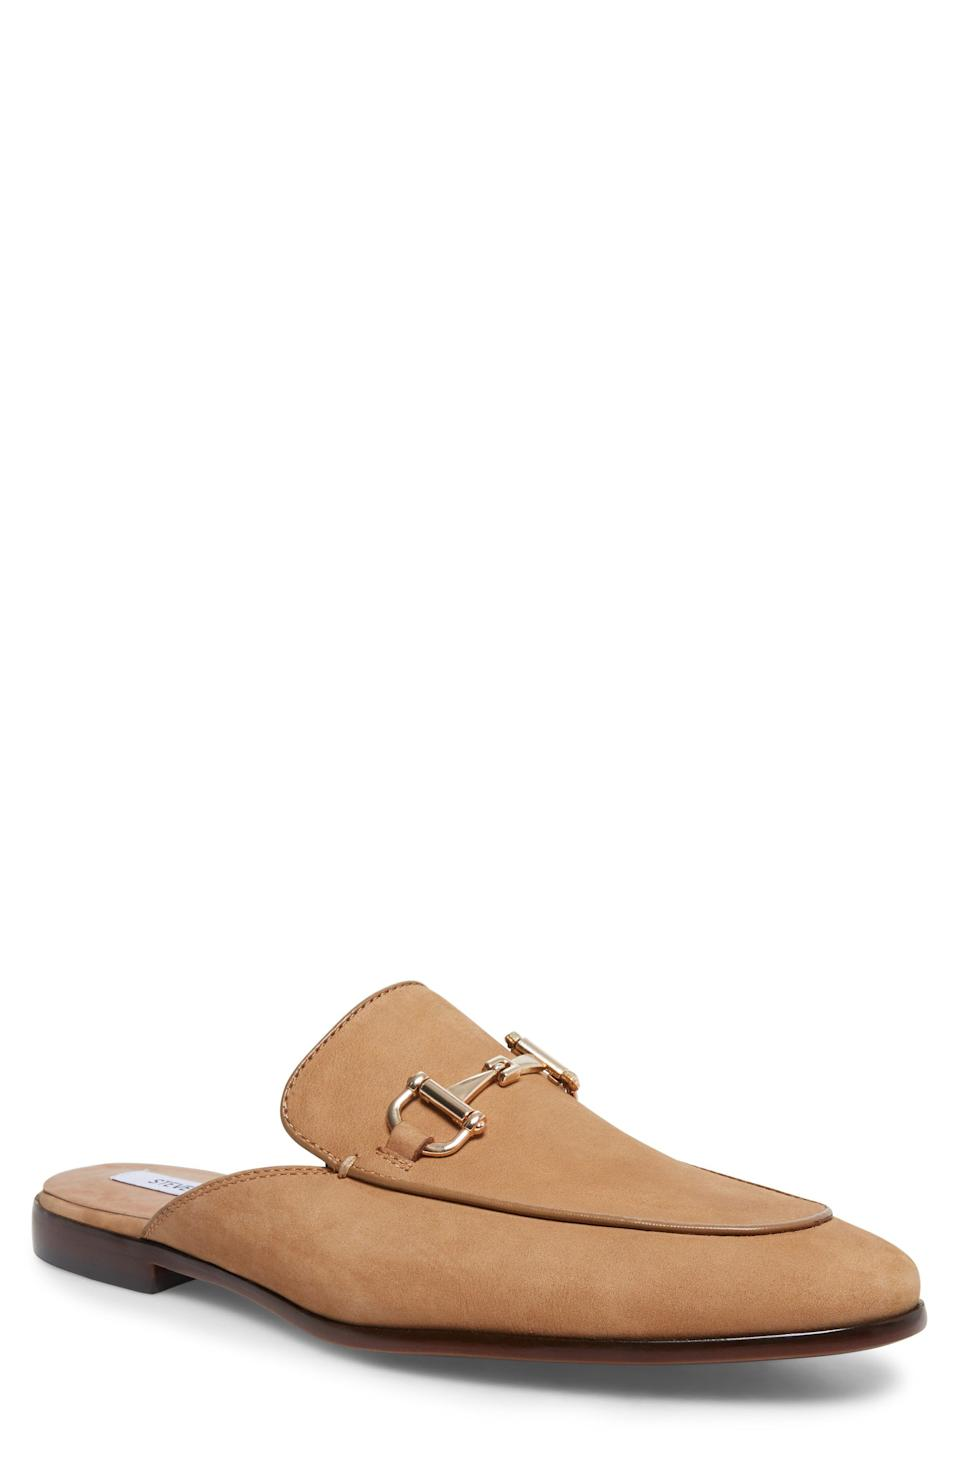 """<p><strong>STEVE MADDEN</strong></p><p>nordstrom.com</p><p><a href=""""https://go.redirectingat.com?id=74968X1596630&url=https%3A%2F%2Fwww.nordstrom.com%2Fs%2Fsteve-madden-dazling-mule-men%2F5311347&sref=https%3A%2F%2Fwww.esquire.com%2Fstyle%2Fmens-fashion%2Fg37002225%2Fnordstrom-anniversary-sale-mens-fashion-deals-2021%2F"""" rel=""""nofollow noopener"""" target=""""_blank"""" data-ylk=""""slk:Shop Now"""" class=""""link rapid-noclick-resp"""">Shop Now</a></p><p><strong>Sale: </strong><strong>$71.90</strong></p><p><strong>After Sale: $110.00</strong></p><p>Mules are our friend. And this one should be your BFF. </p>"""